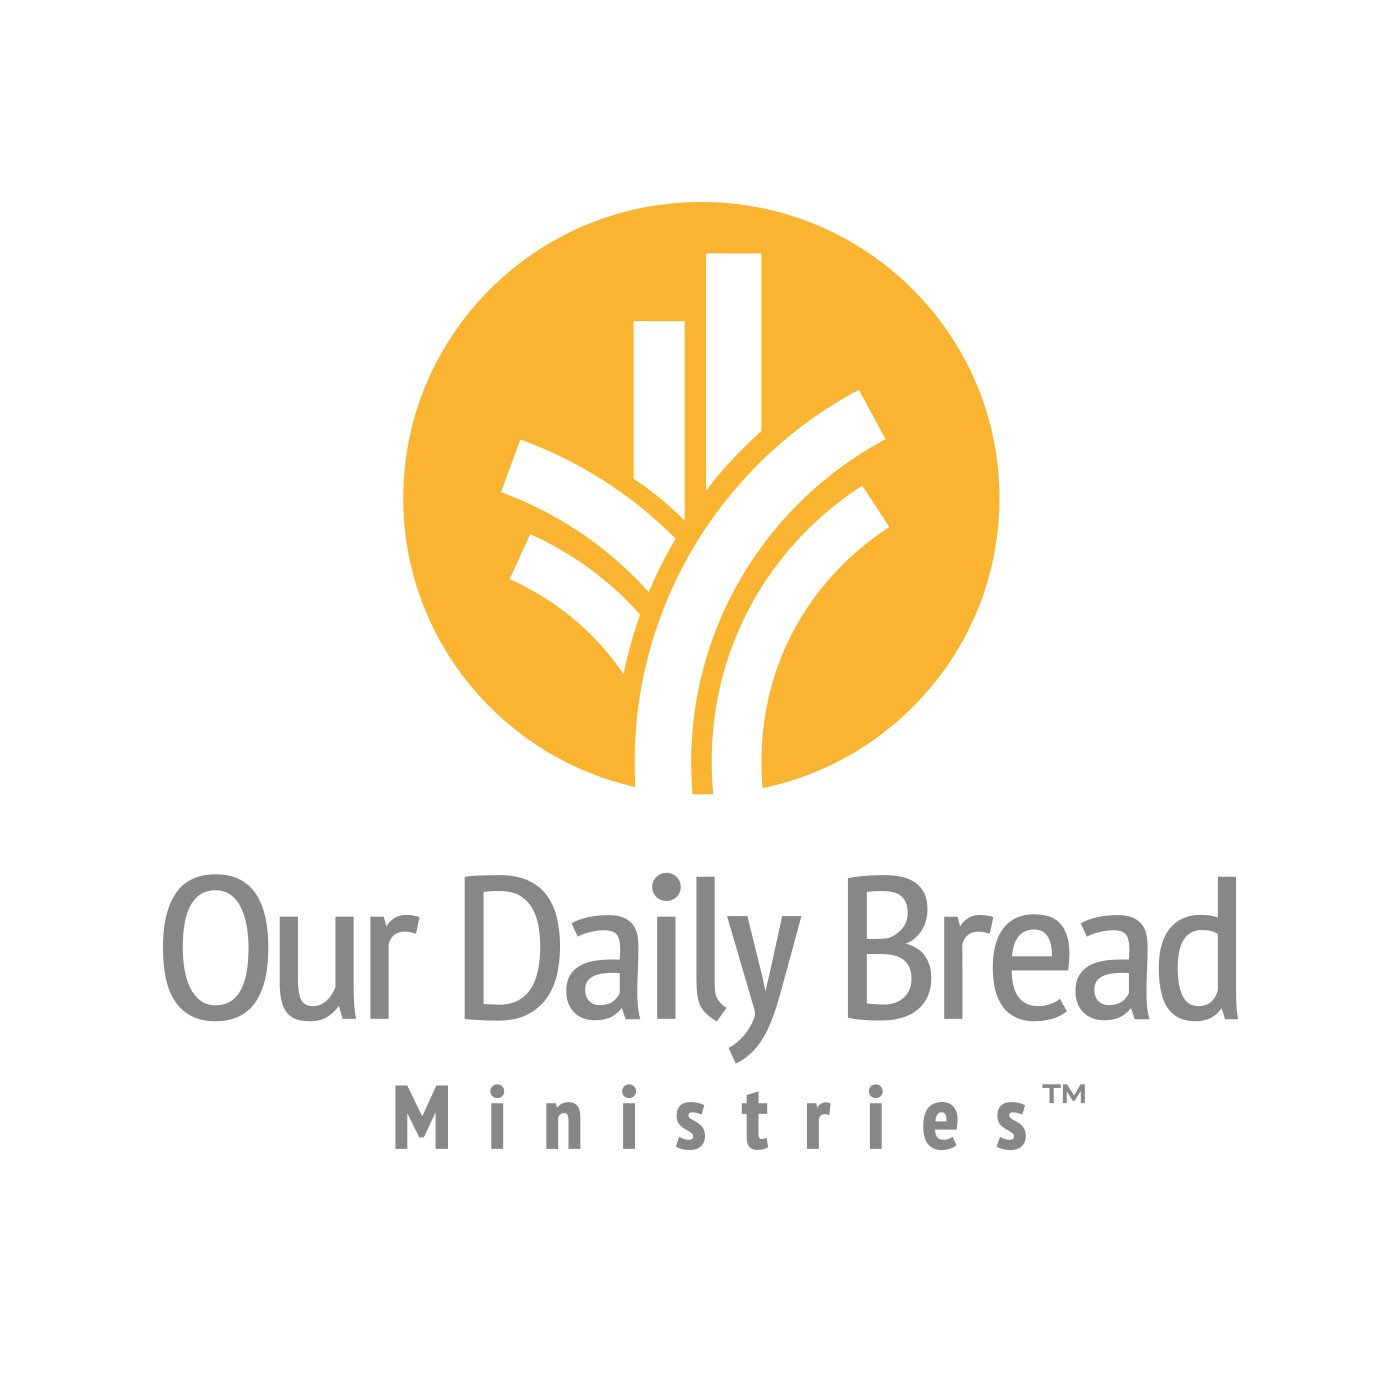 Our Daily Bread 16th January 2021, Our Daily Bread 16th January 2021 Today Devotional – Mighty, Latest Nigeria News, Daily Devotionals & Celebrity Gossips - Chidispalace